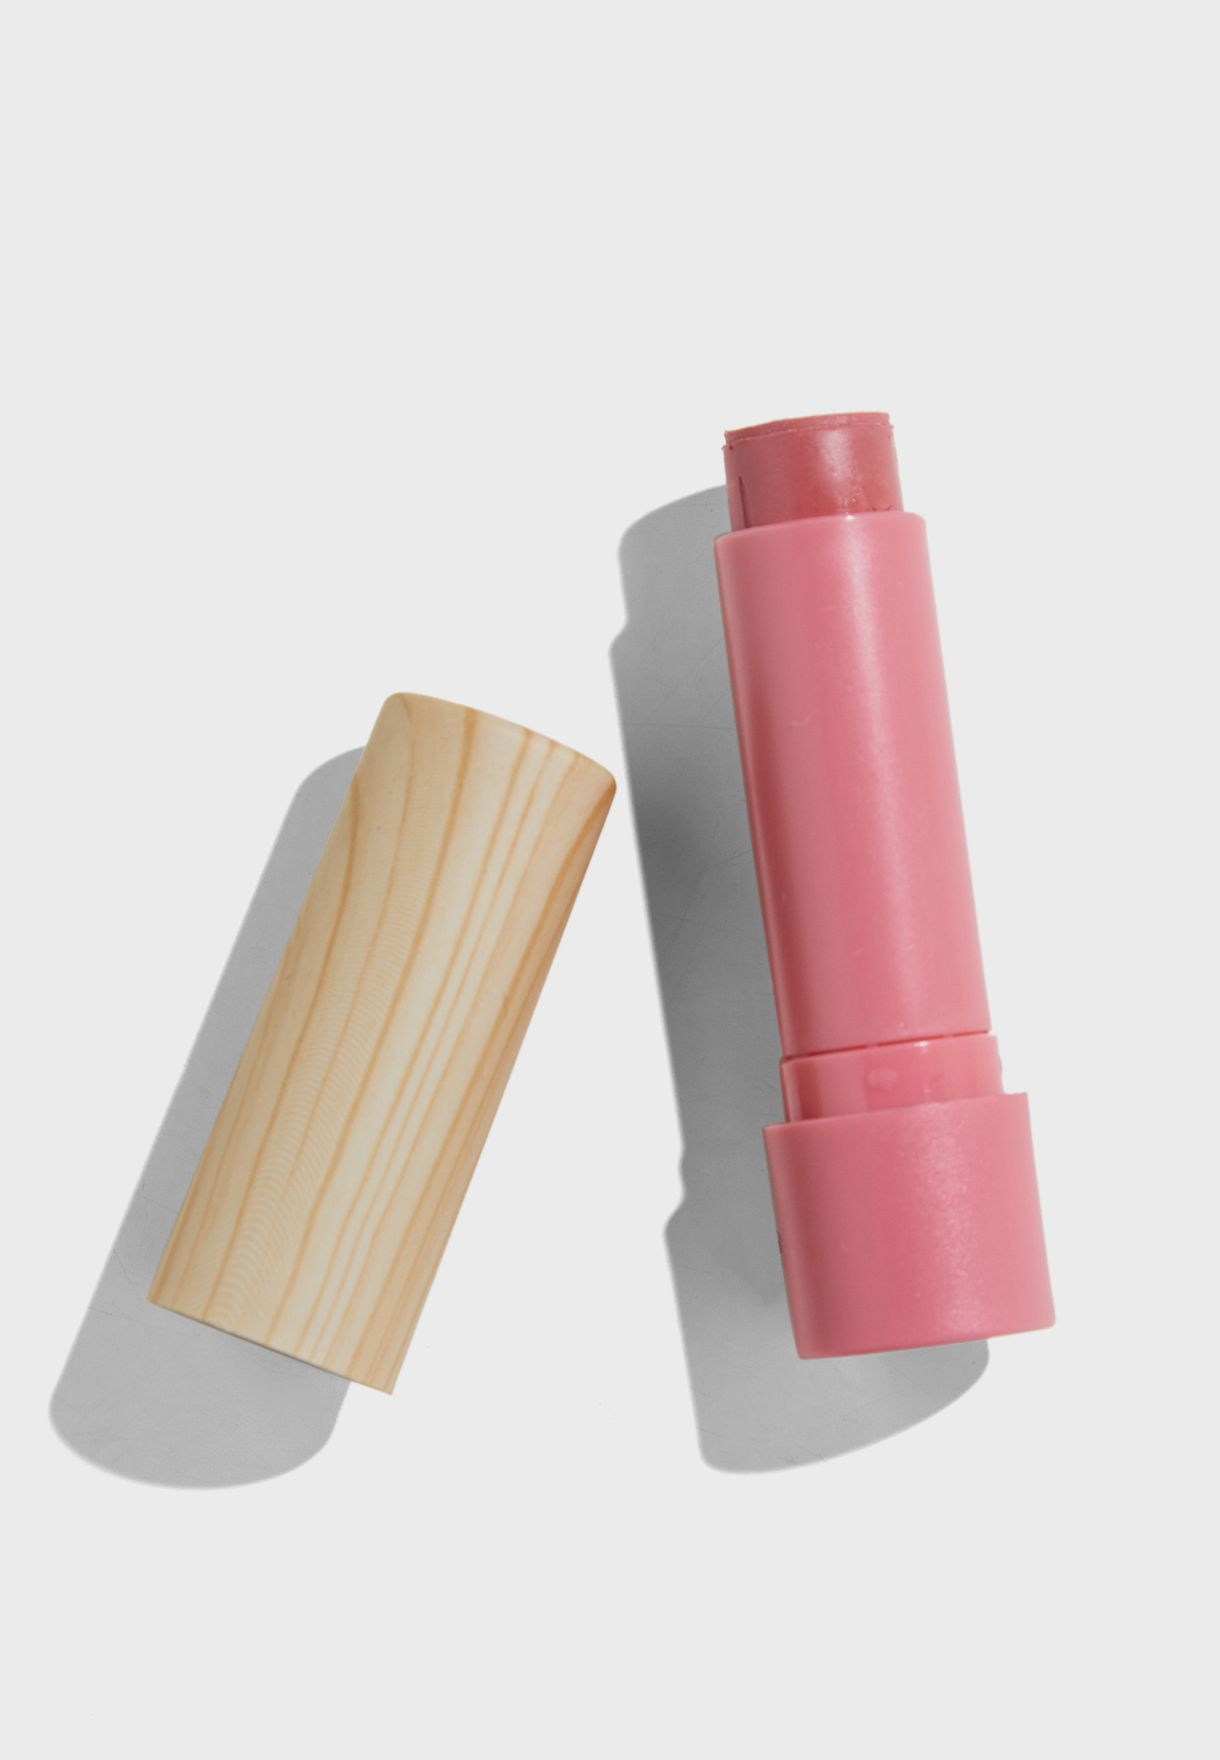 SPF 15 Tinted Lip Balm - Sunset Cove